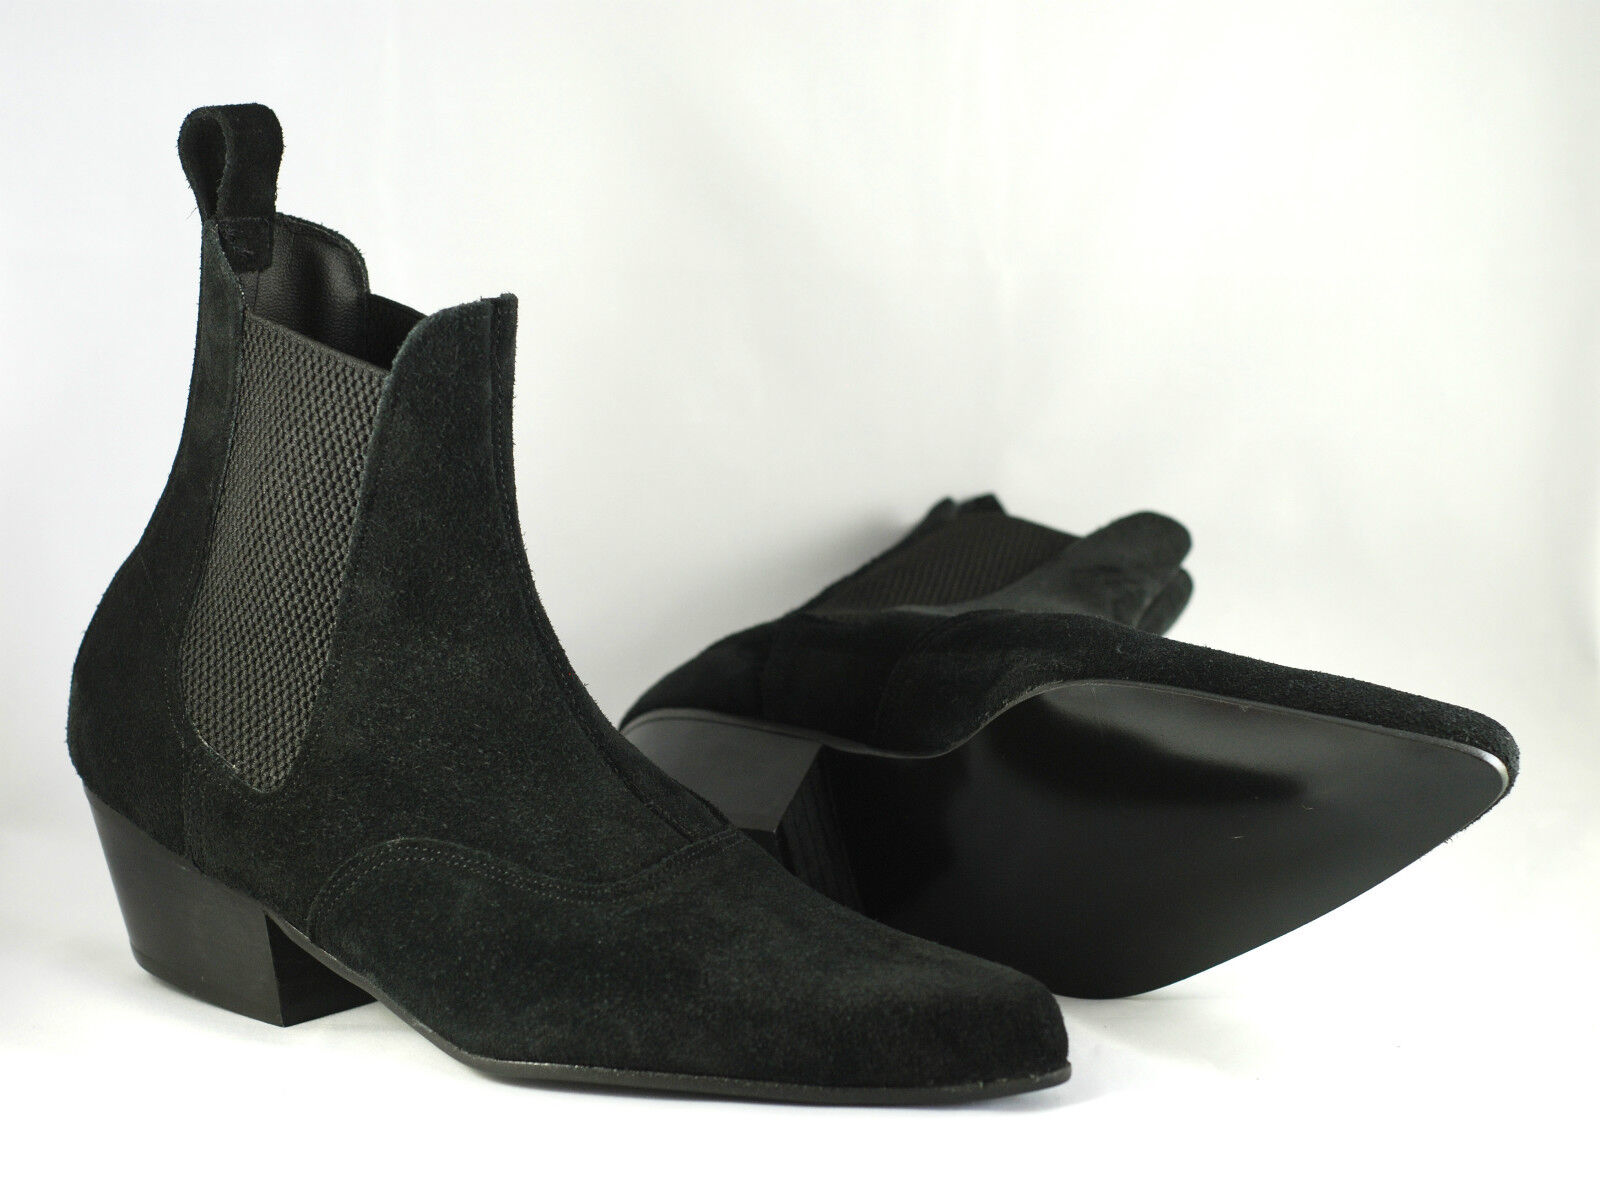 Mens Retro Sole Black Suede Chelsea Beatle Beat Mod Boots with Cuban Heel